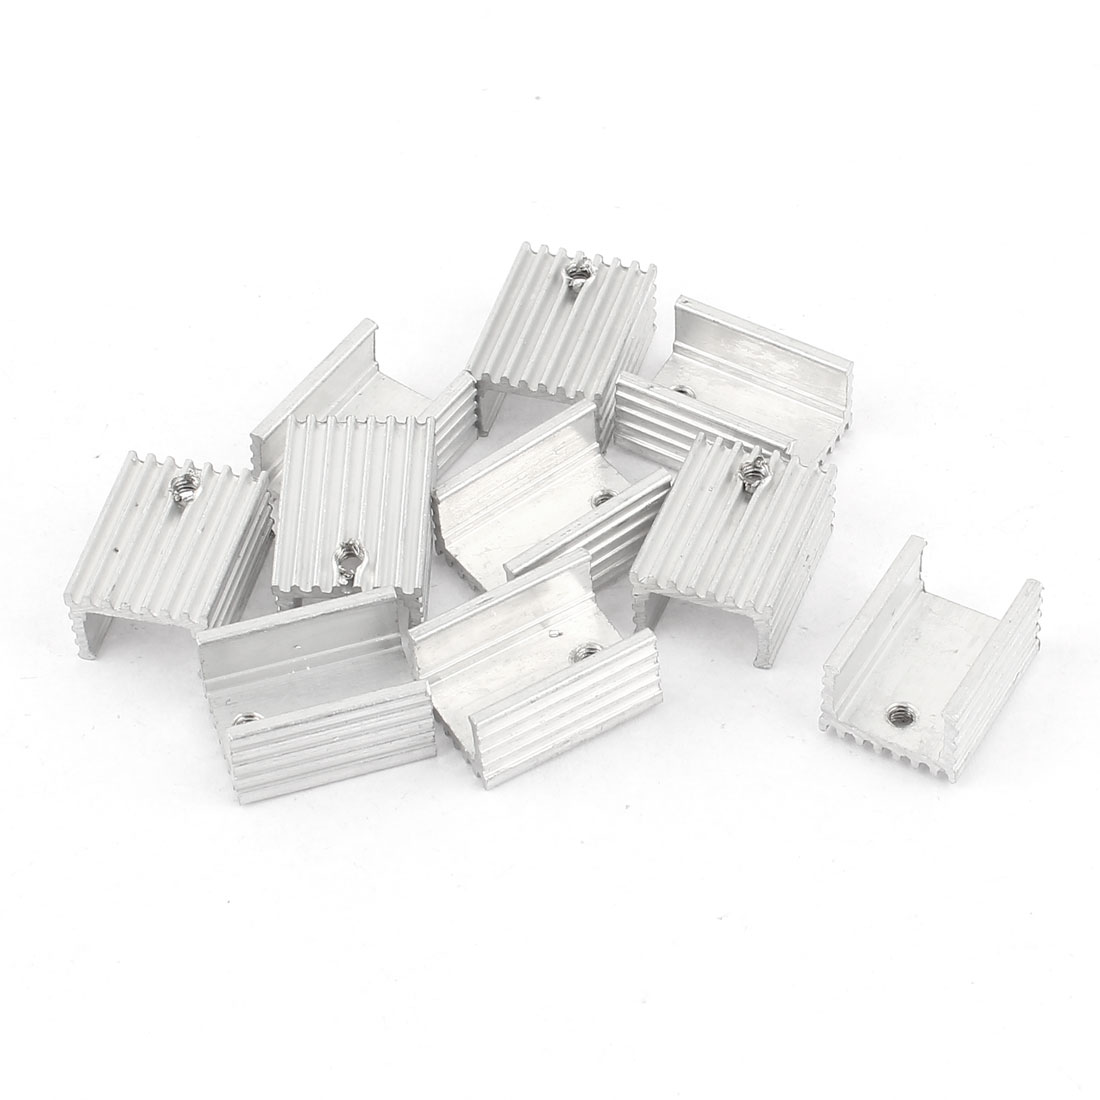 10 Pcs 2.5mm Hole Aluminium 20mmx15mmx10mm Heatsink Heat Sink Cooling Cooler Fin